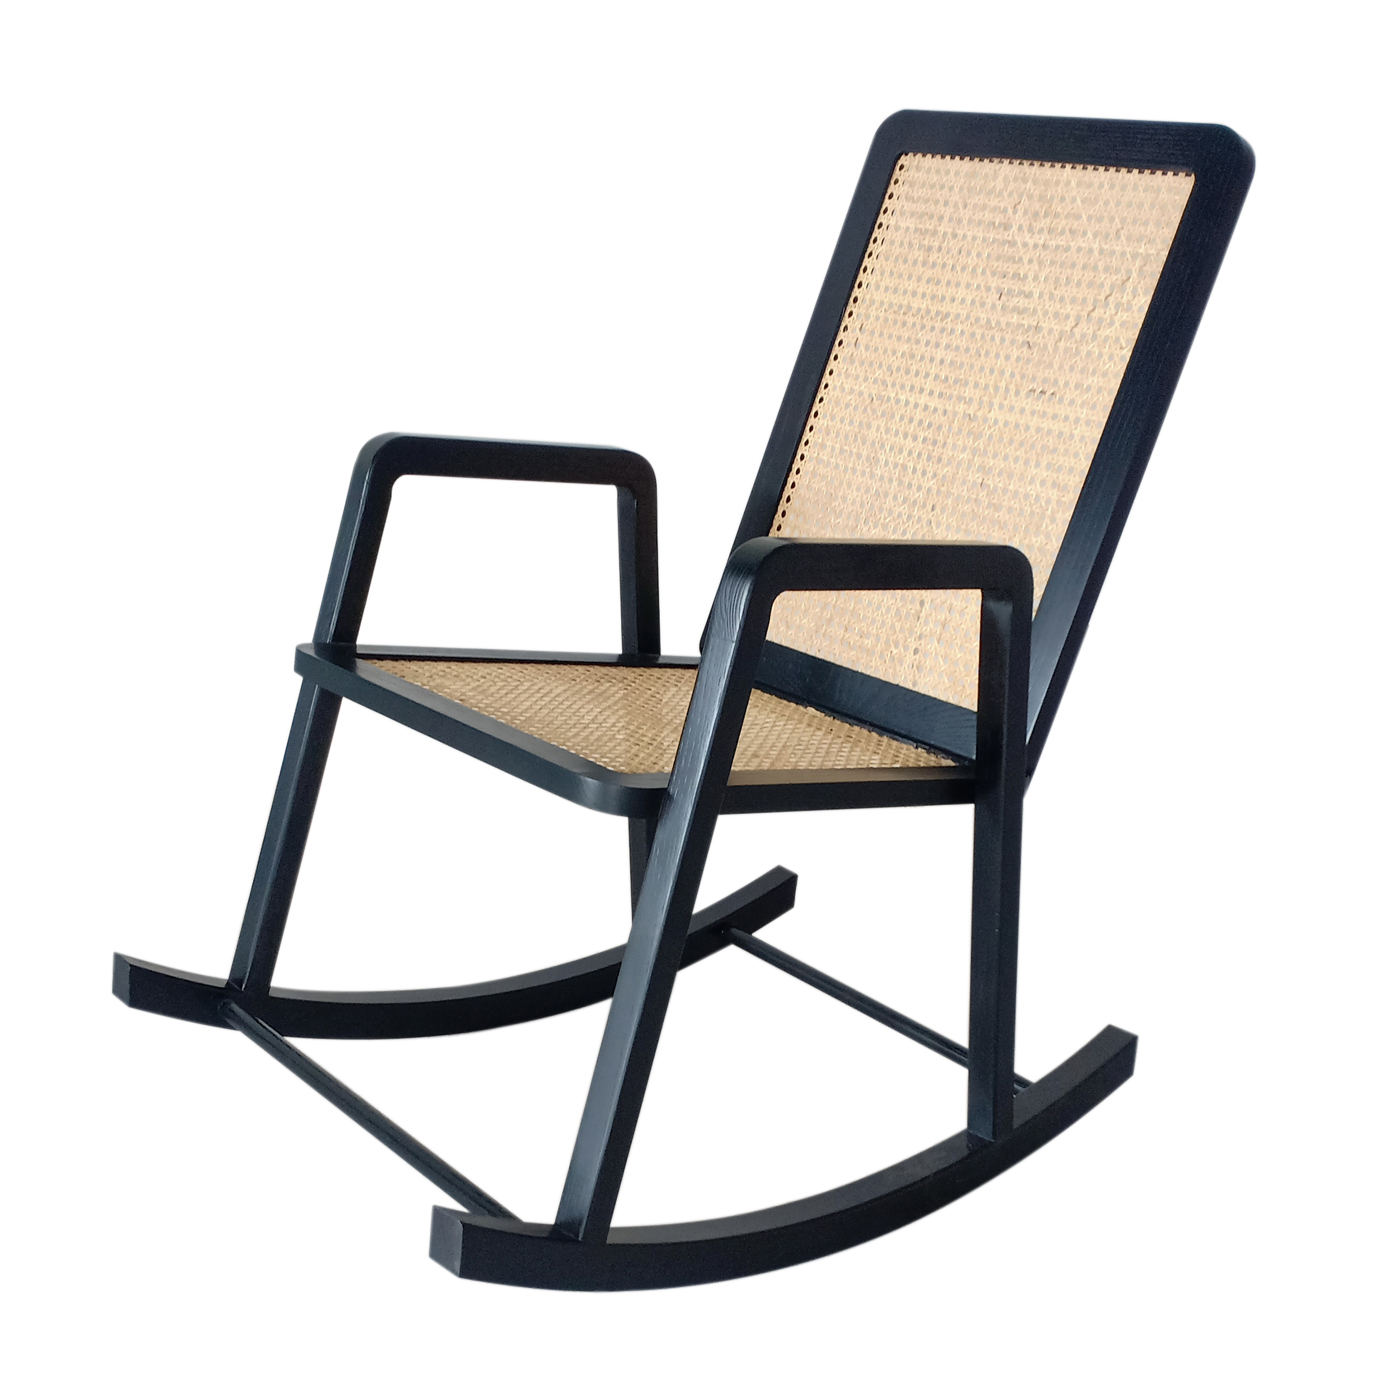 Ratargul Black Rocking Chair